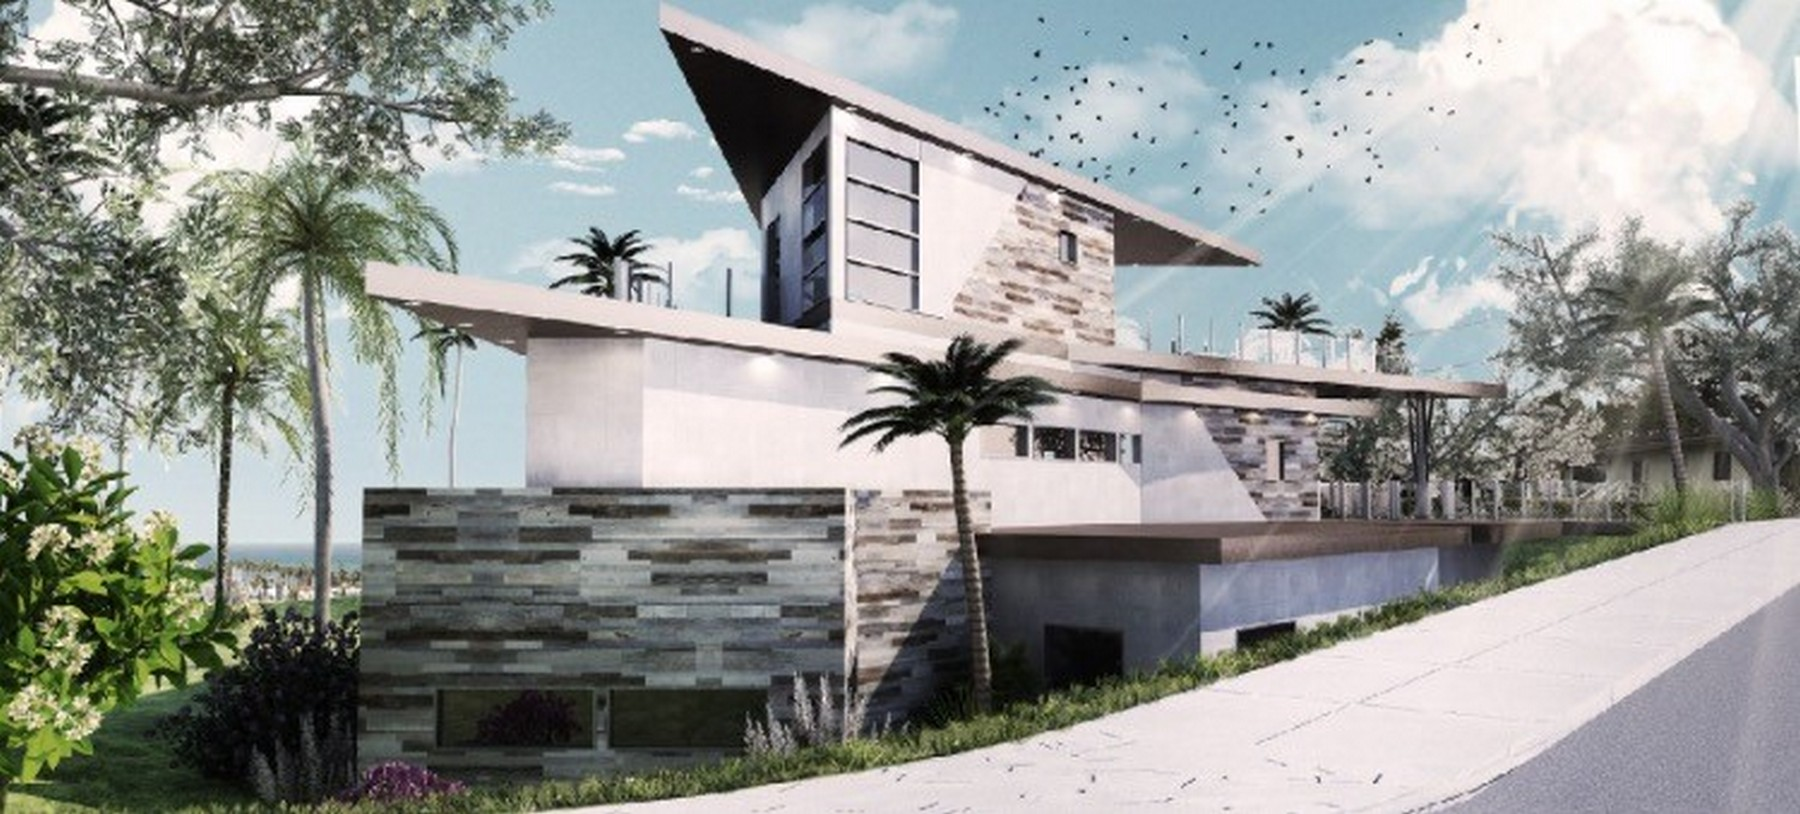 Single Family Home for Sale at 4410 Adair Street Sunset Cliffs, San Diego, California, 92107 United States